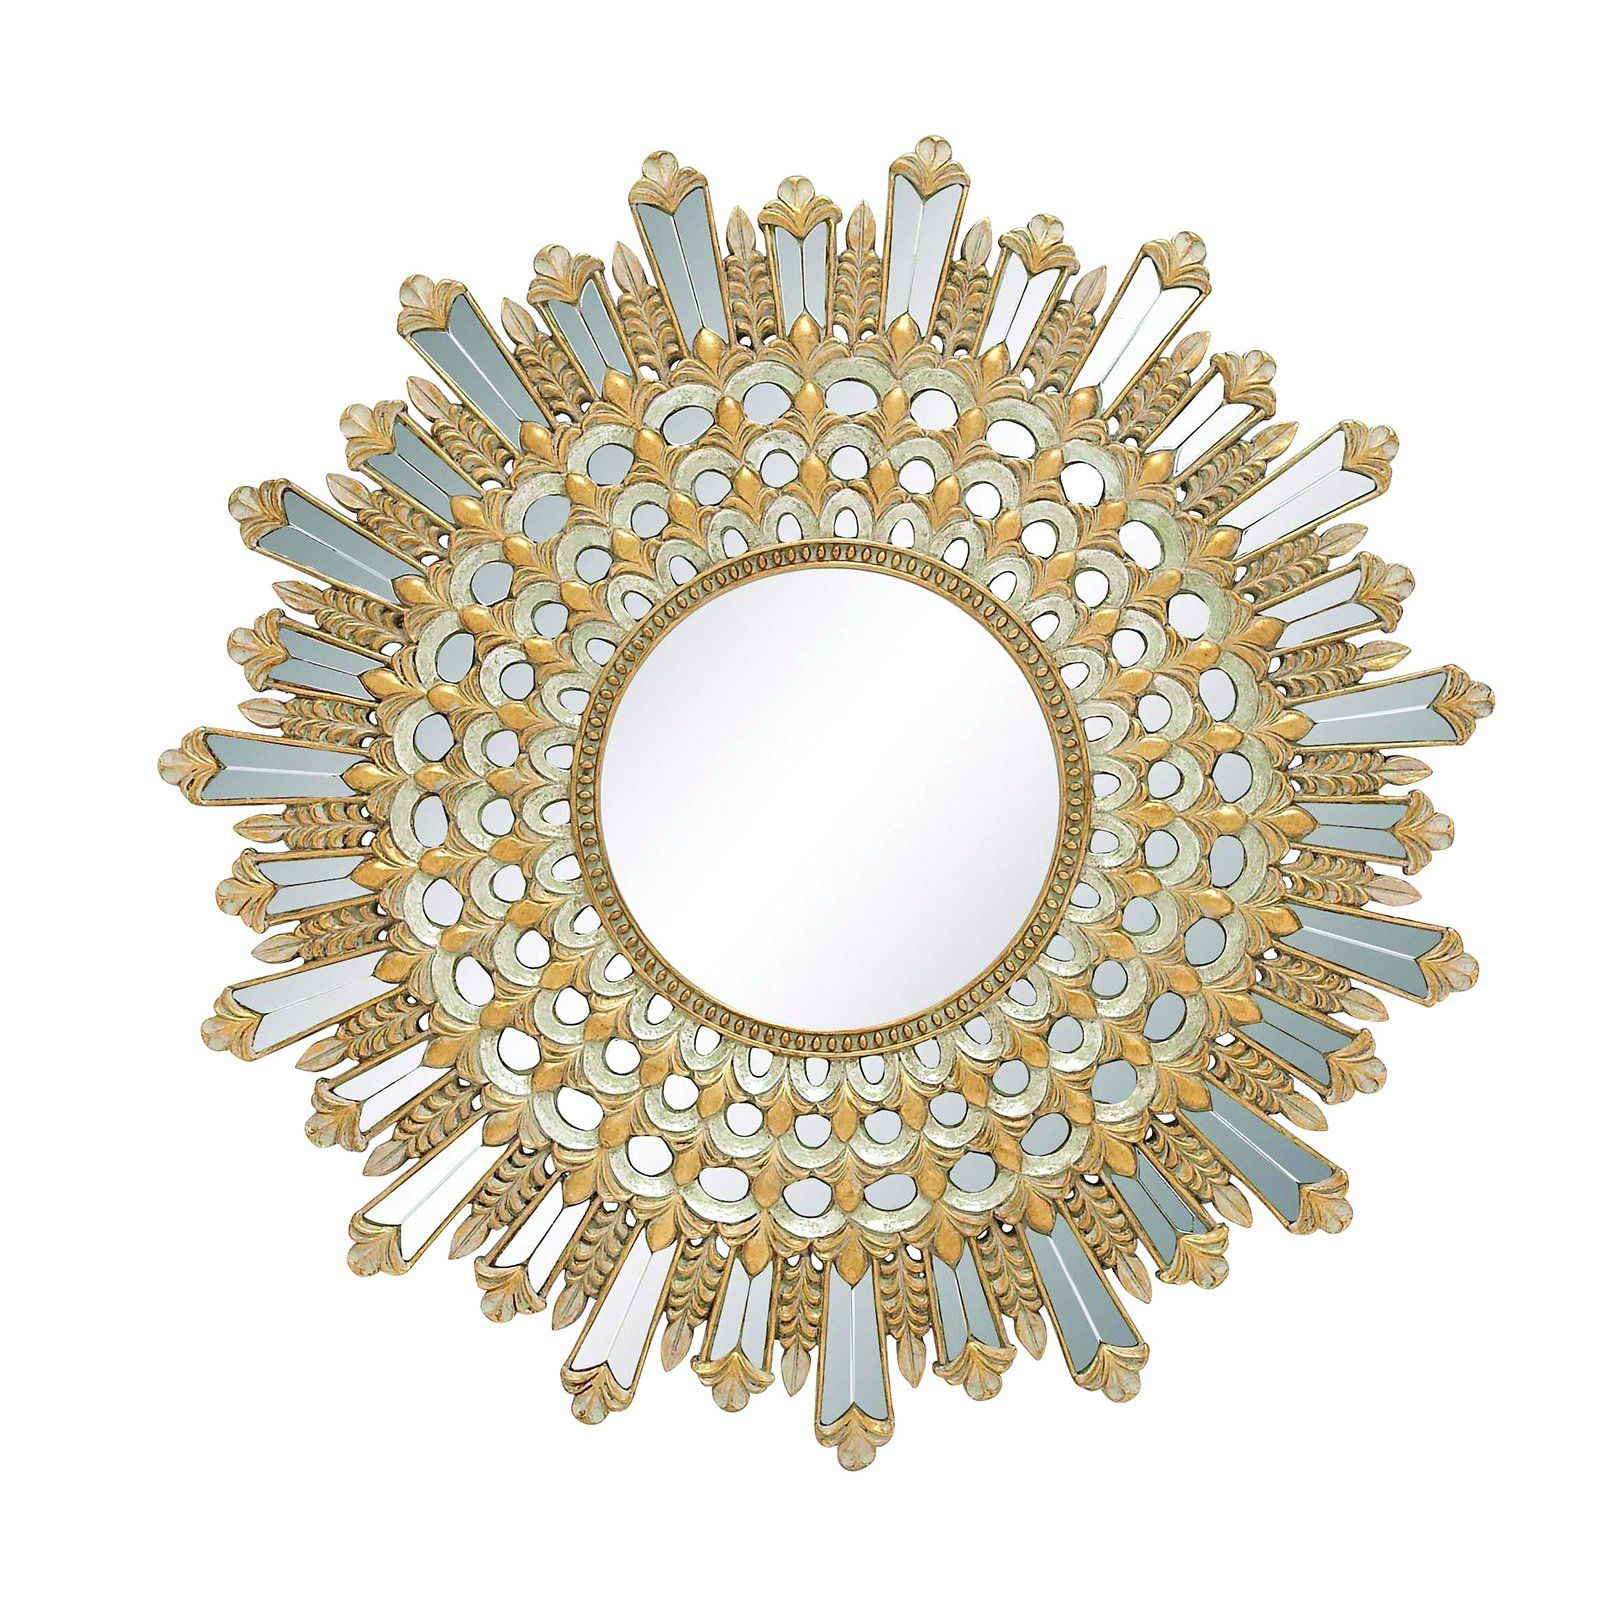 Benzara Elegant Sun Shaped Golden Wall Mirror - 32 diam. in.